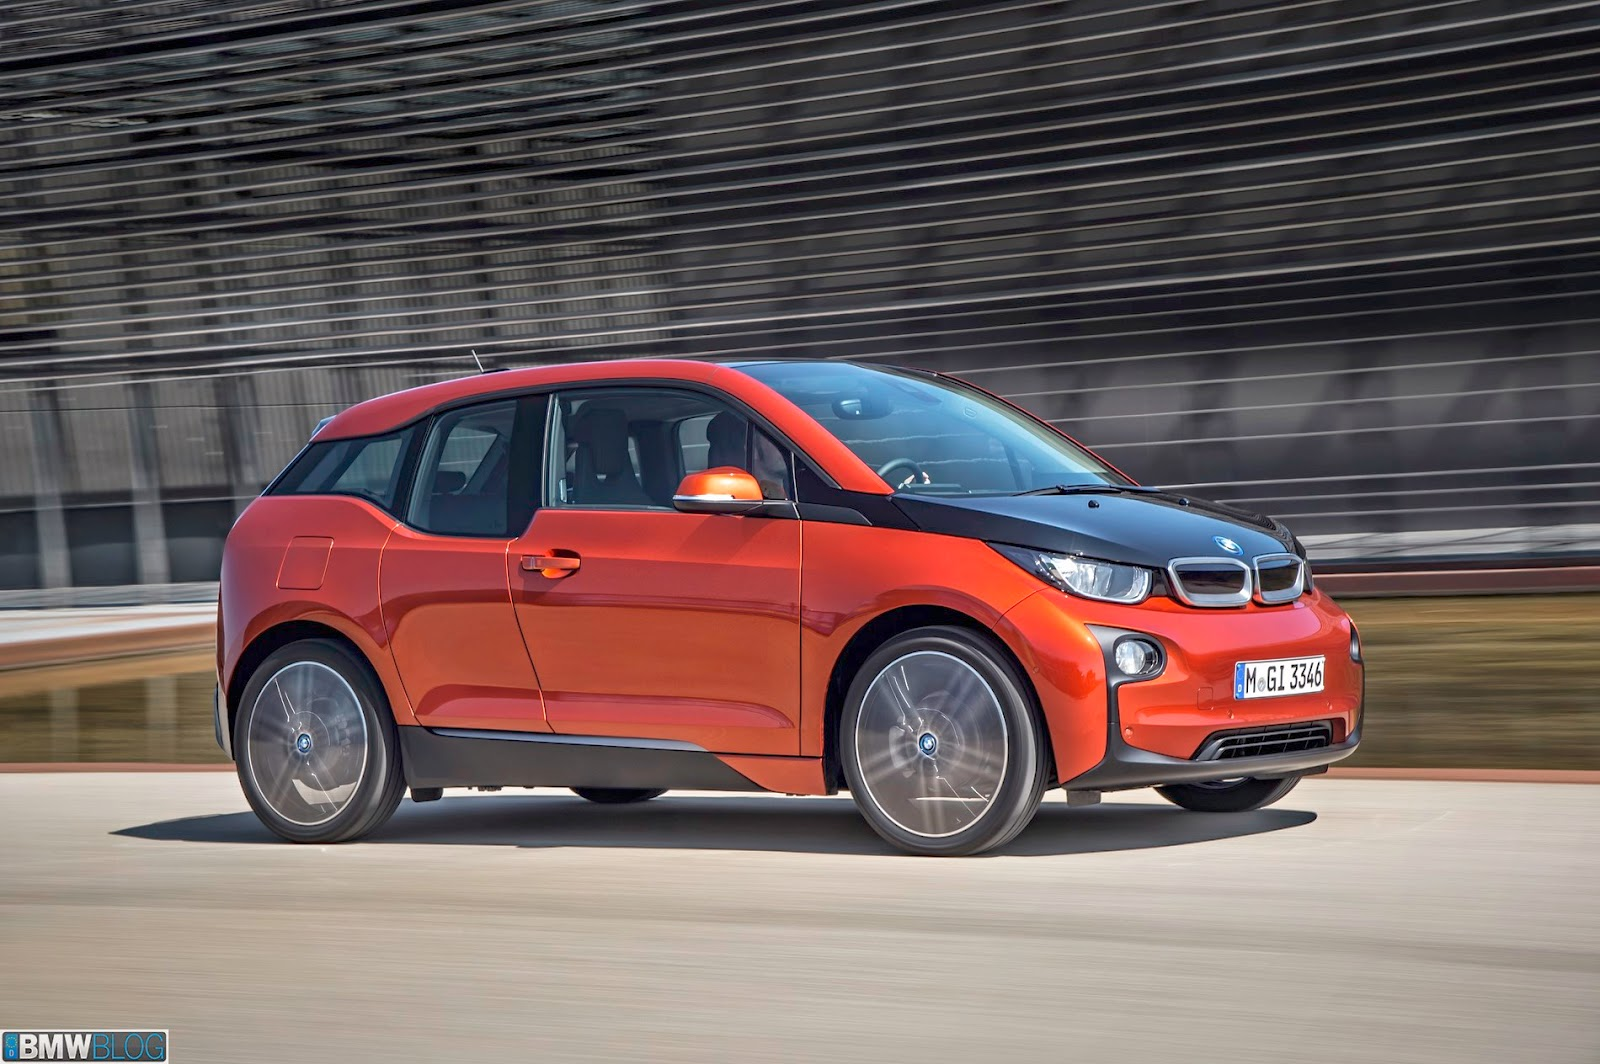 The Electric Bmw I3 Breaking Bmw I3 Rex Gets 2 500 Cvrp Rebate In